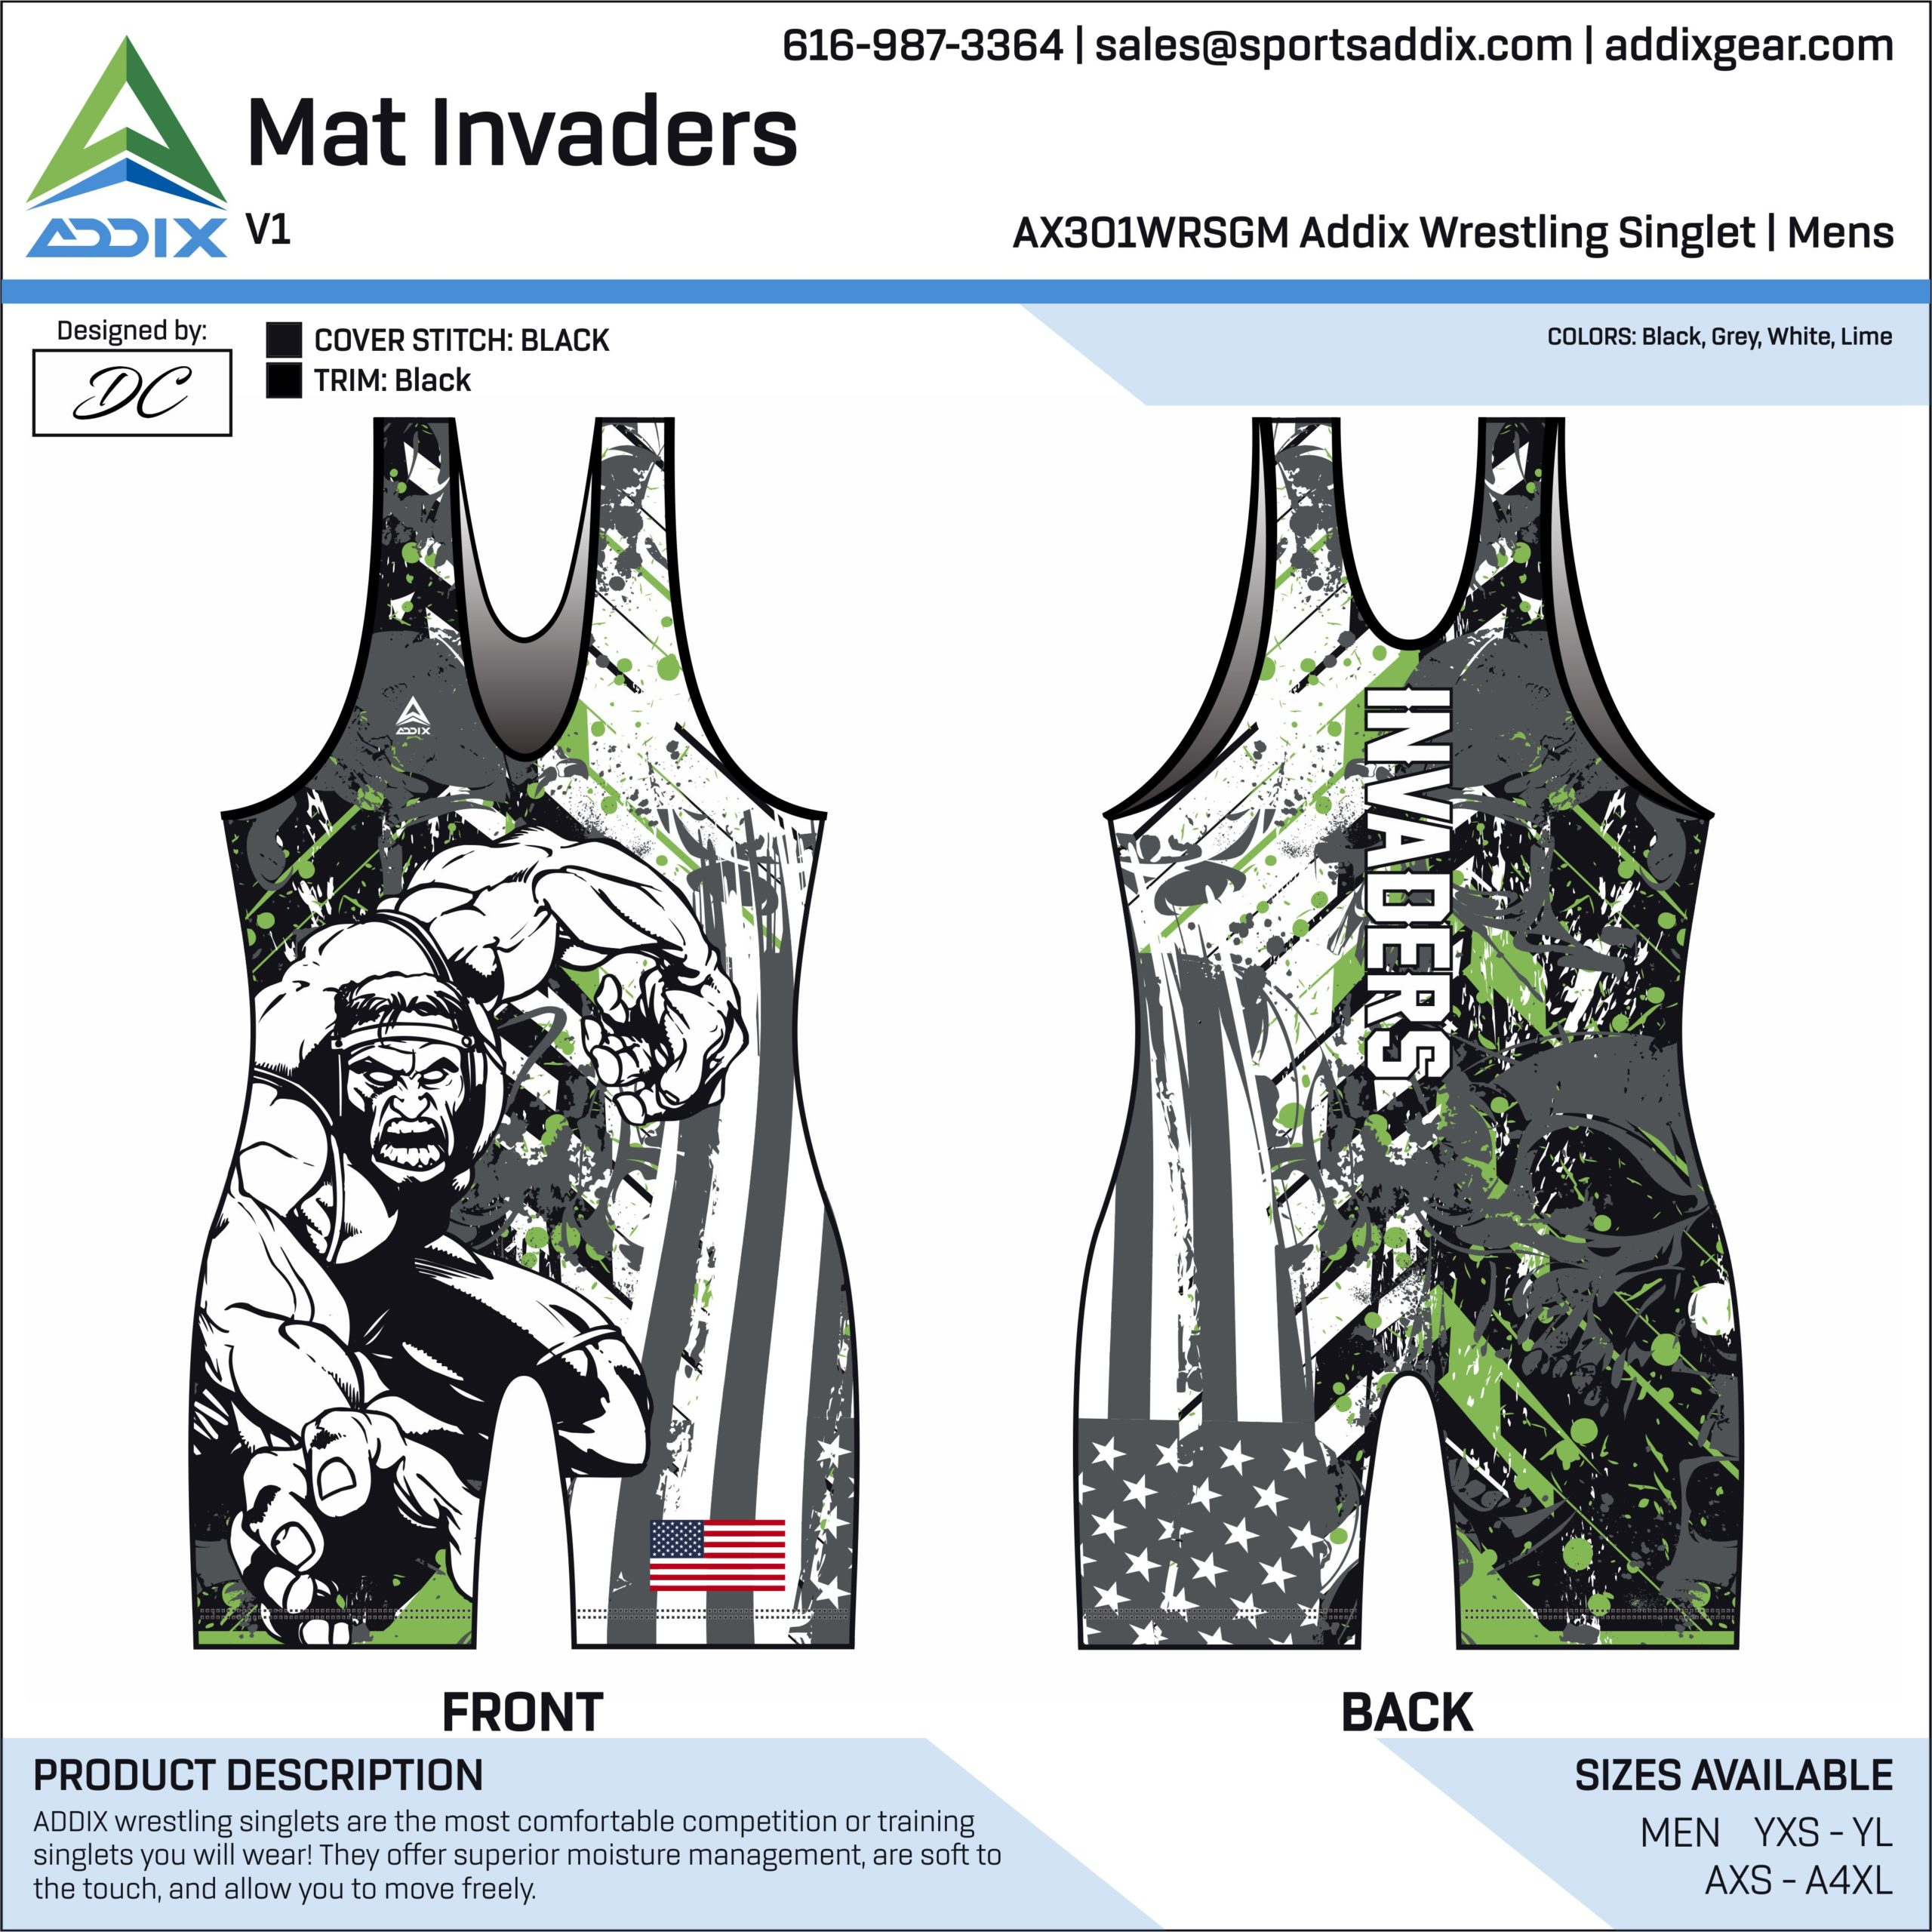 Mat Invaders Wrestling Singlet